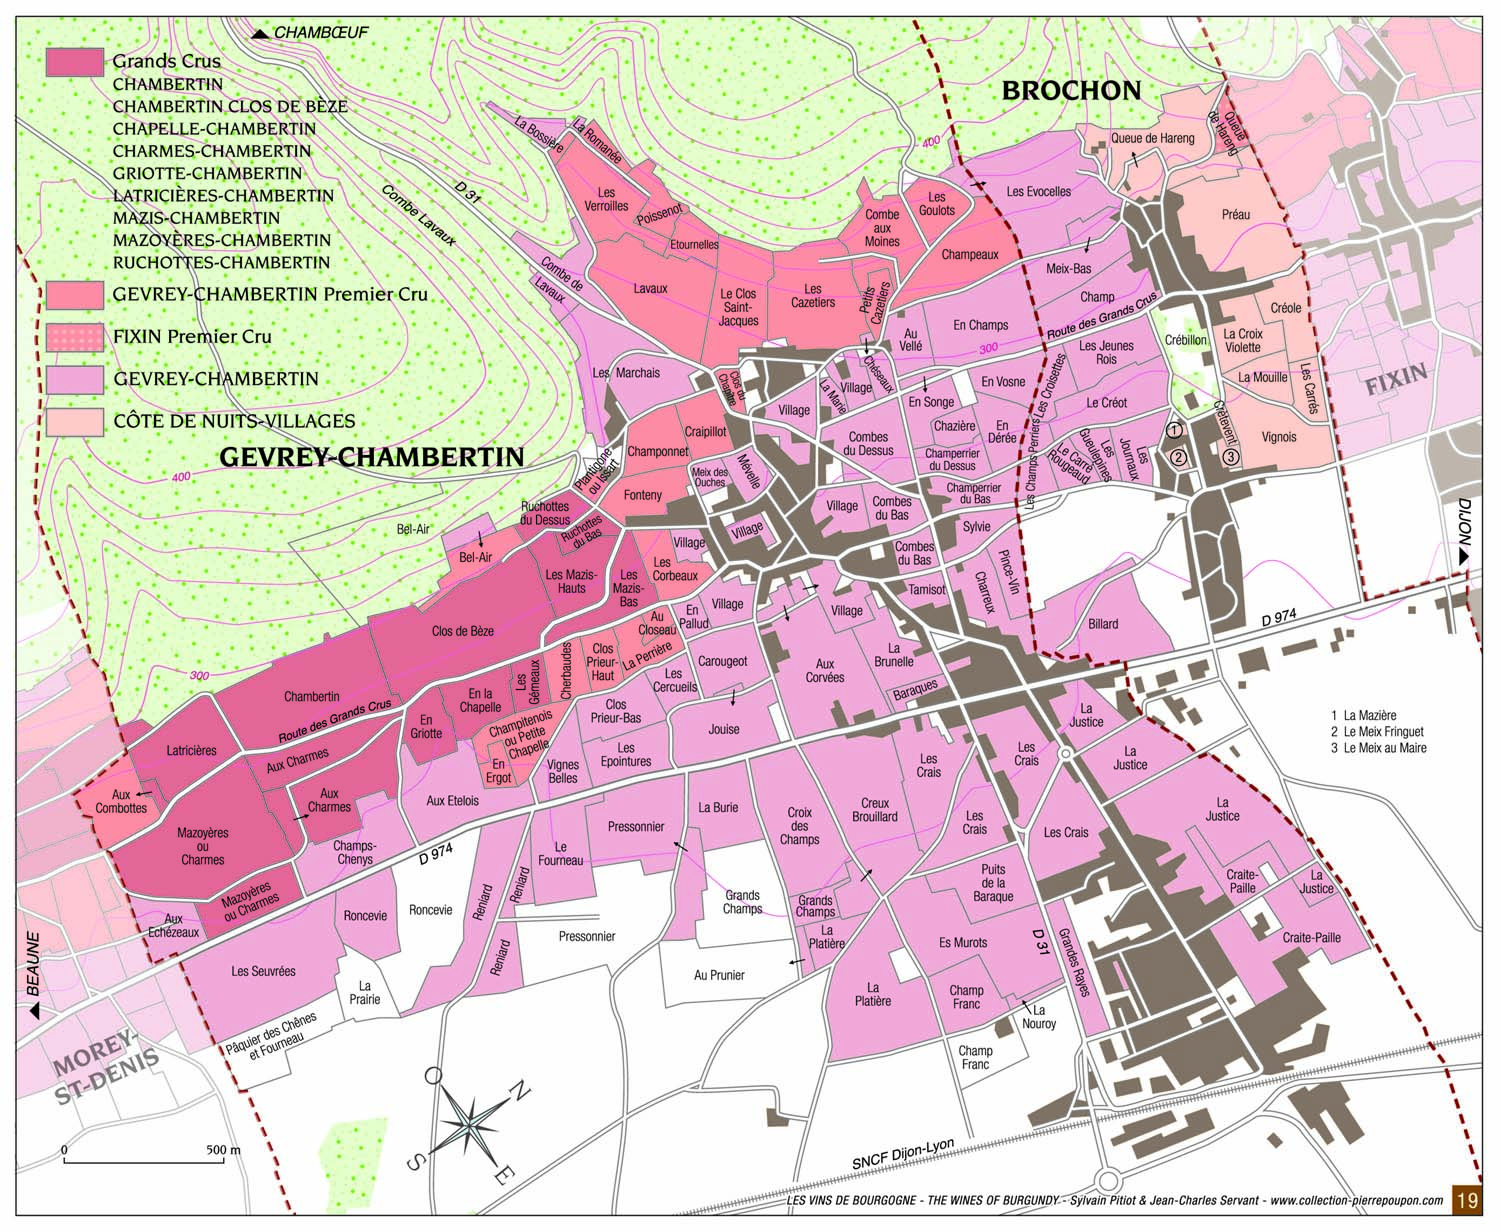 Chapelle-Chambertin - Guide des appellations - Le Figaro Vin